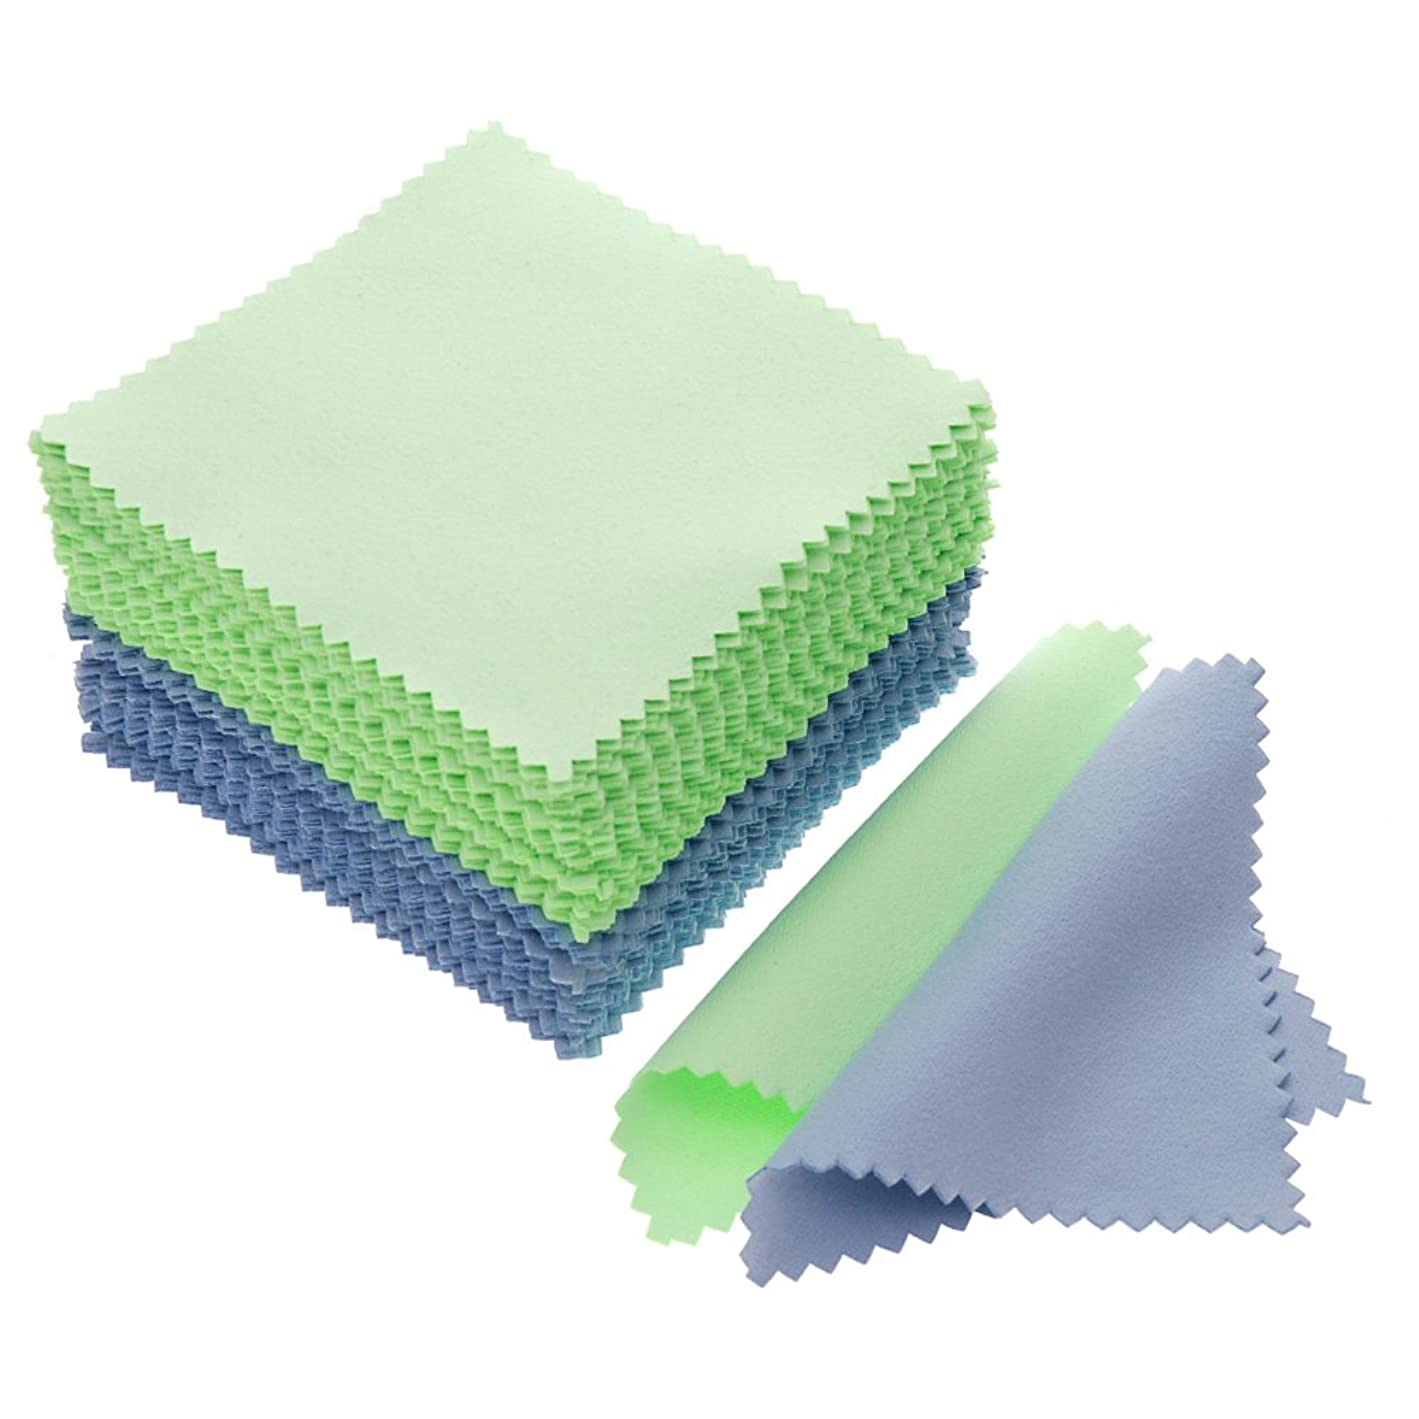 JUANYA 100pcs Jewelry Cleaning Cloth Polishing Cloth for Sterling Silver Gold Platinum (Green Blue) y97120020640402